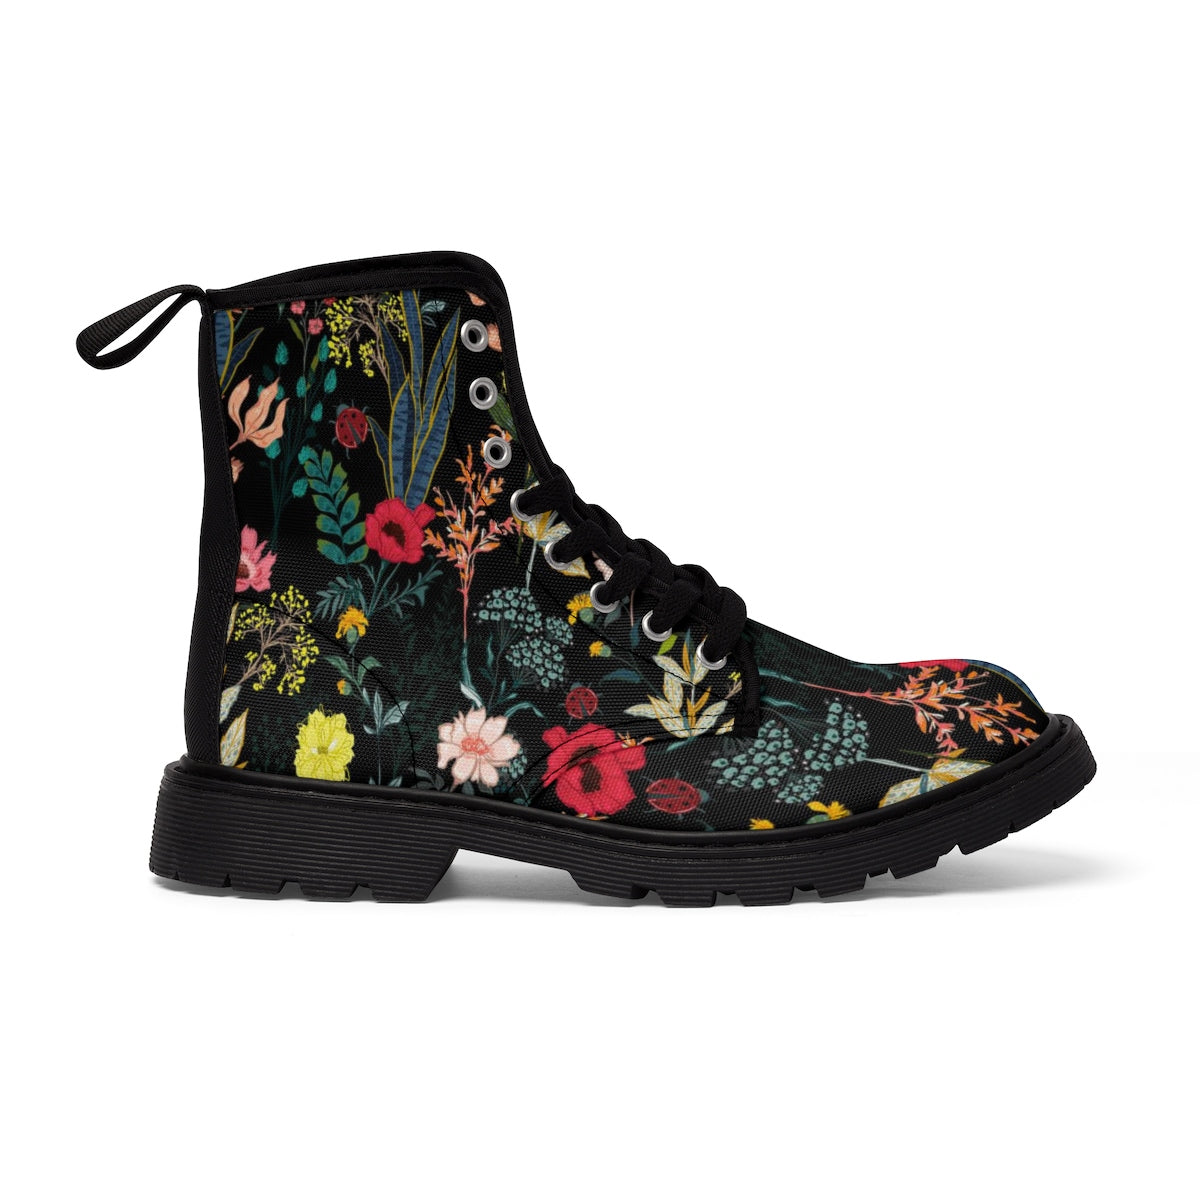 WILLOWBY - Women's Canvas Boots - Hayden Harlow